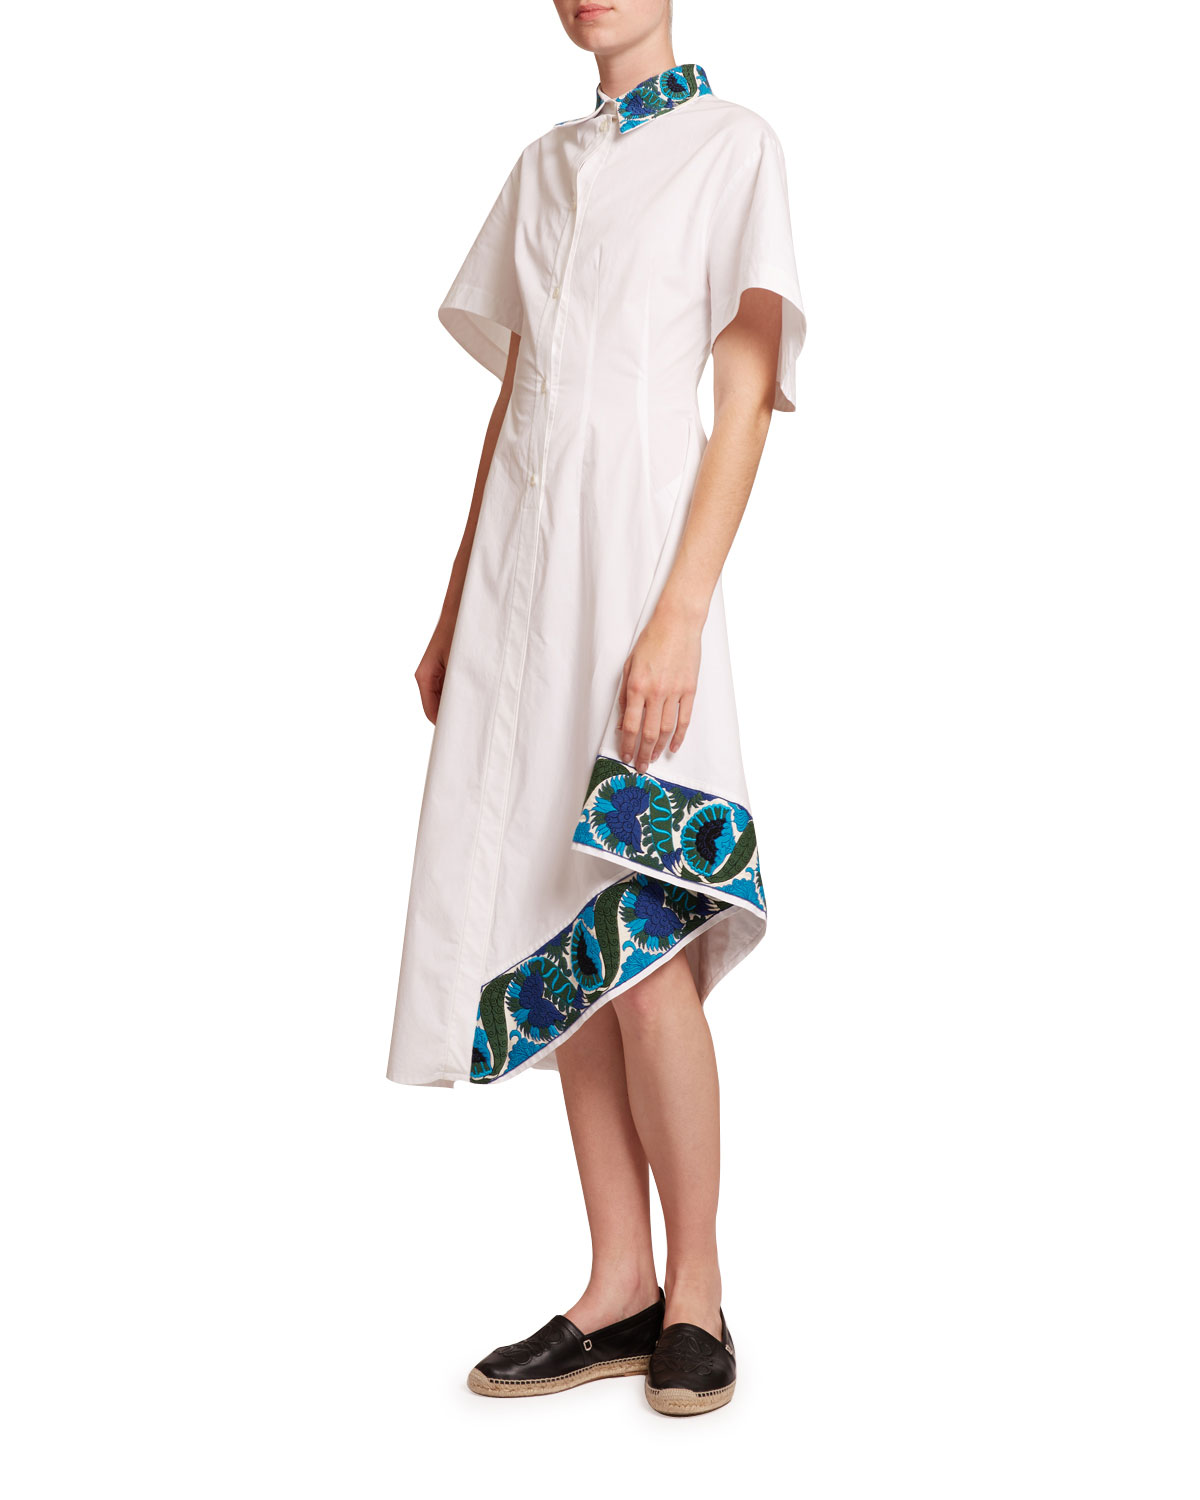 Loewe Dress EMBROIDERED SHORT-SLEEVE SHIRT DRESS